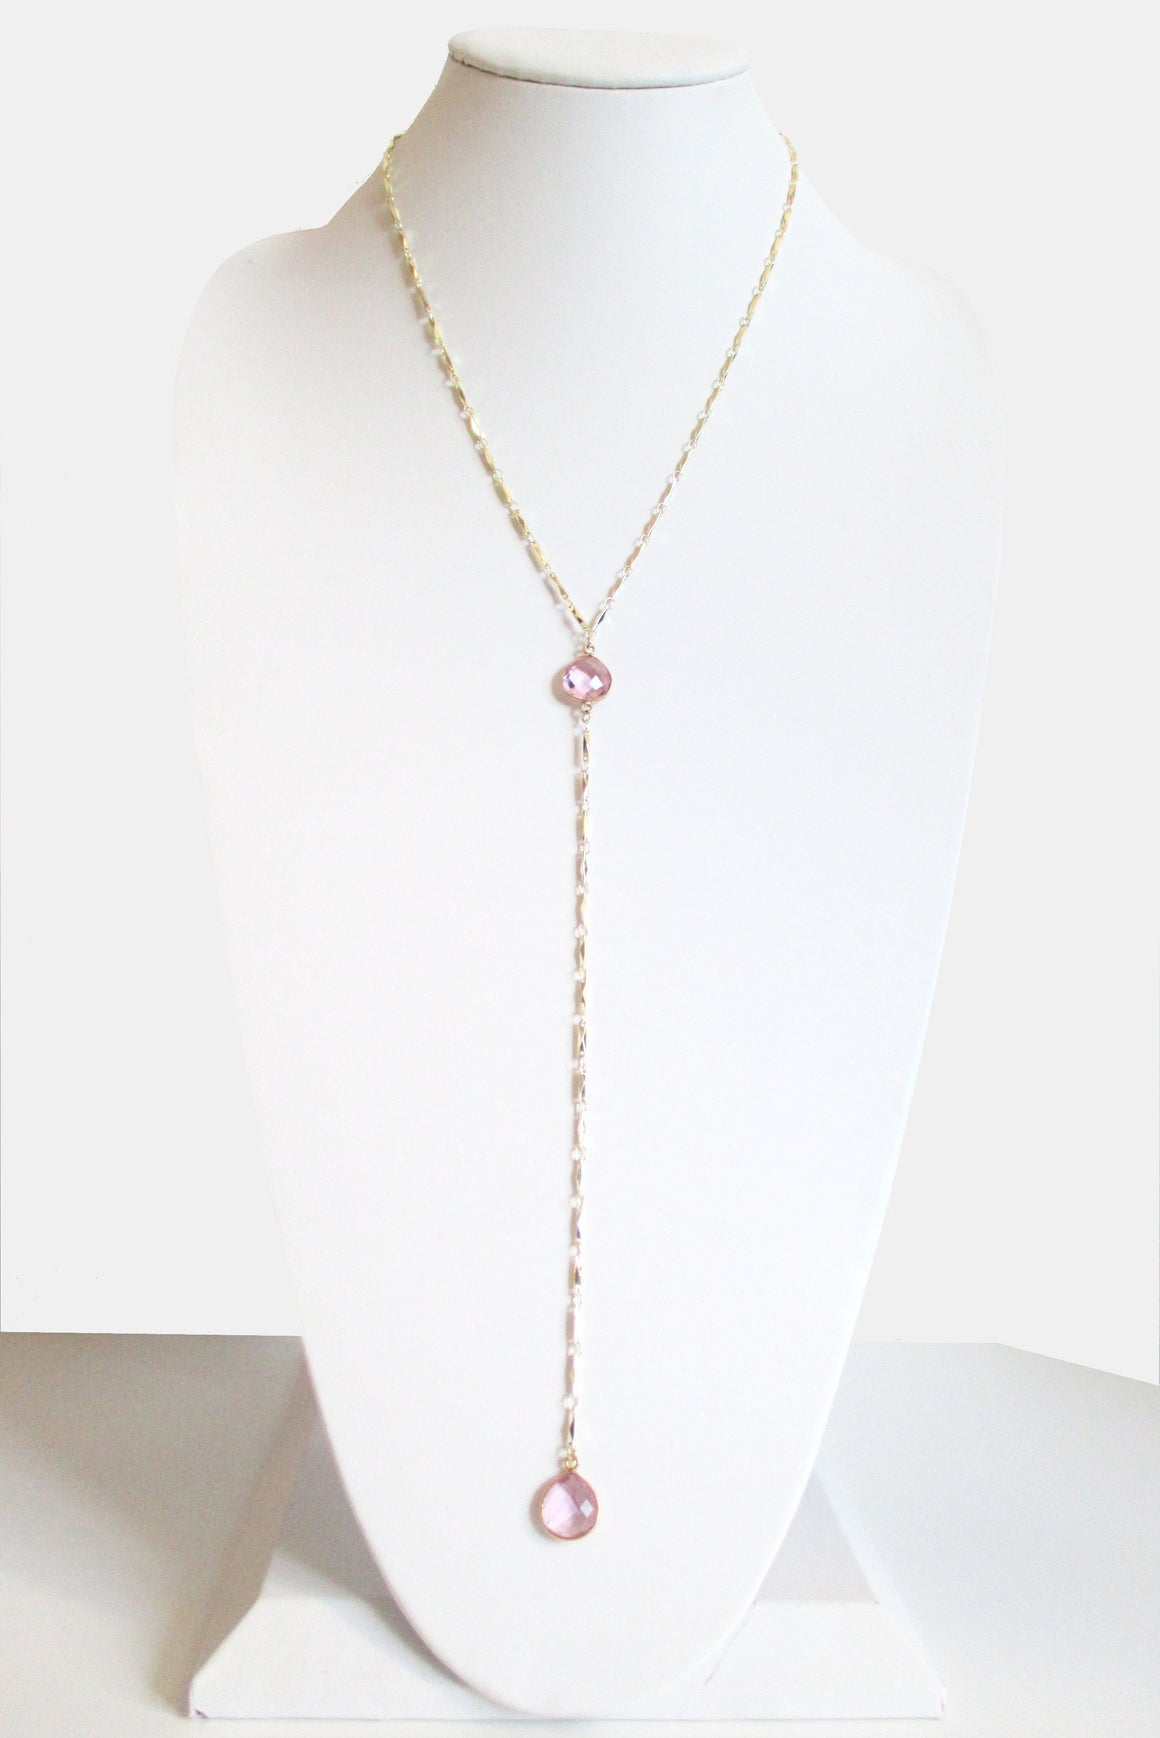 MG ANYA CECELIA Y NECKLACE CLEAR ROSE PINK